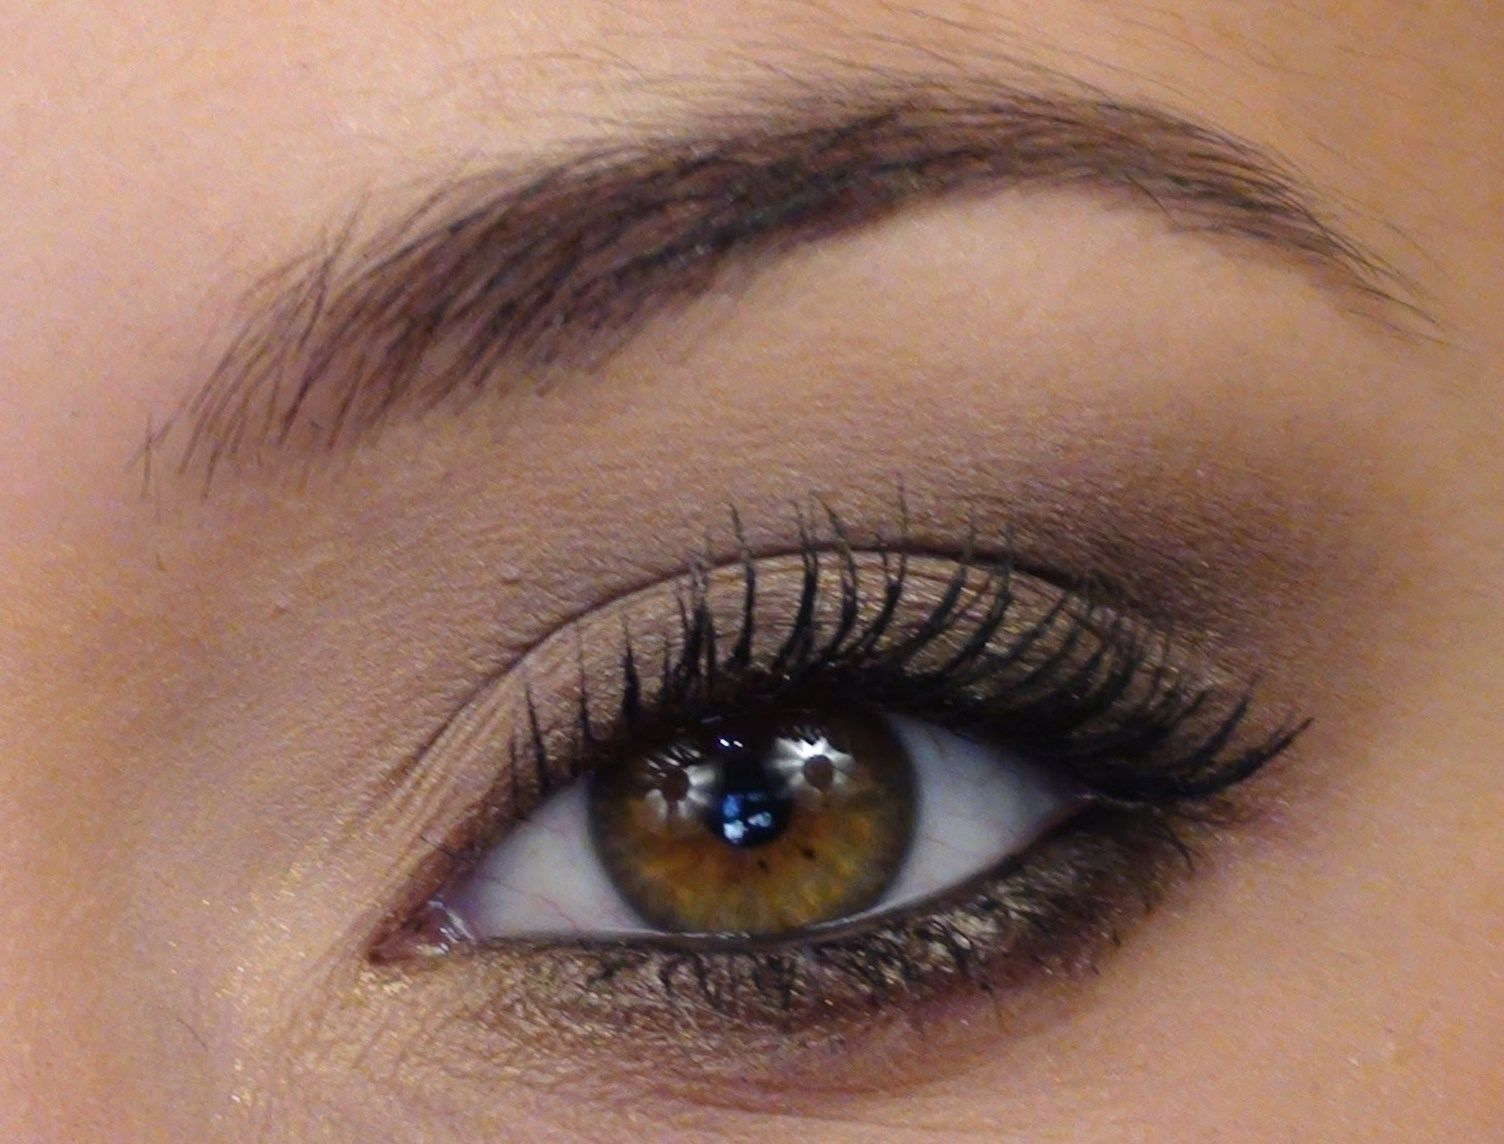 Maquillage des yeux marron - http://lookvisage.ru